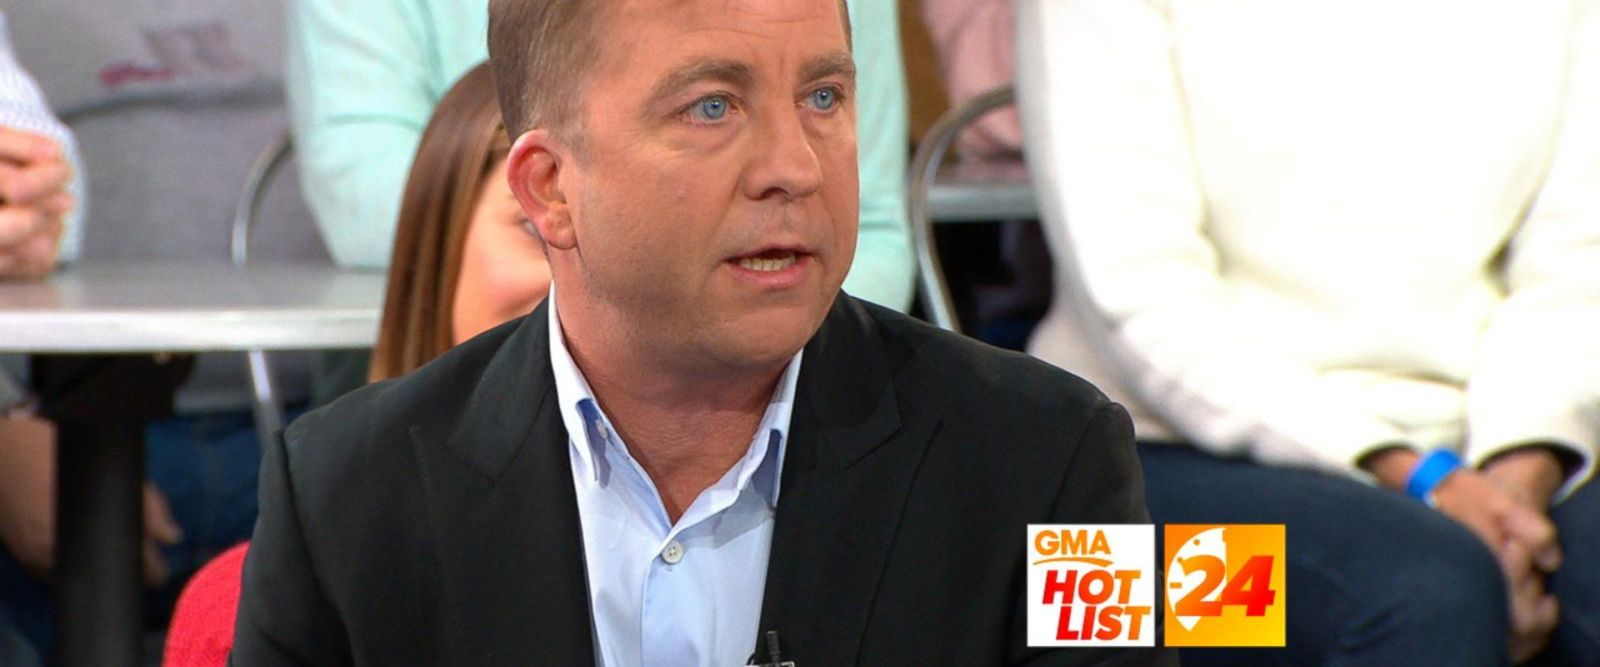 VIDEO; 'GMA' Hot List: Peter Billingsley dishes on a deleted scene from 'A Christmas Story'